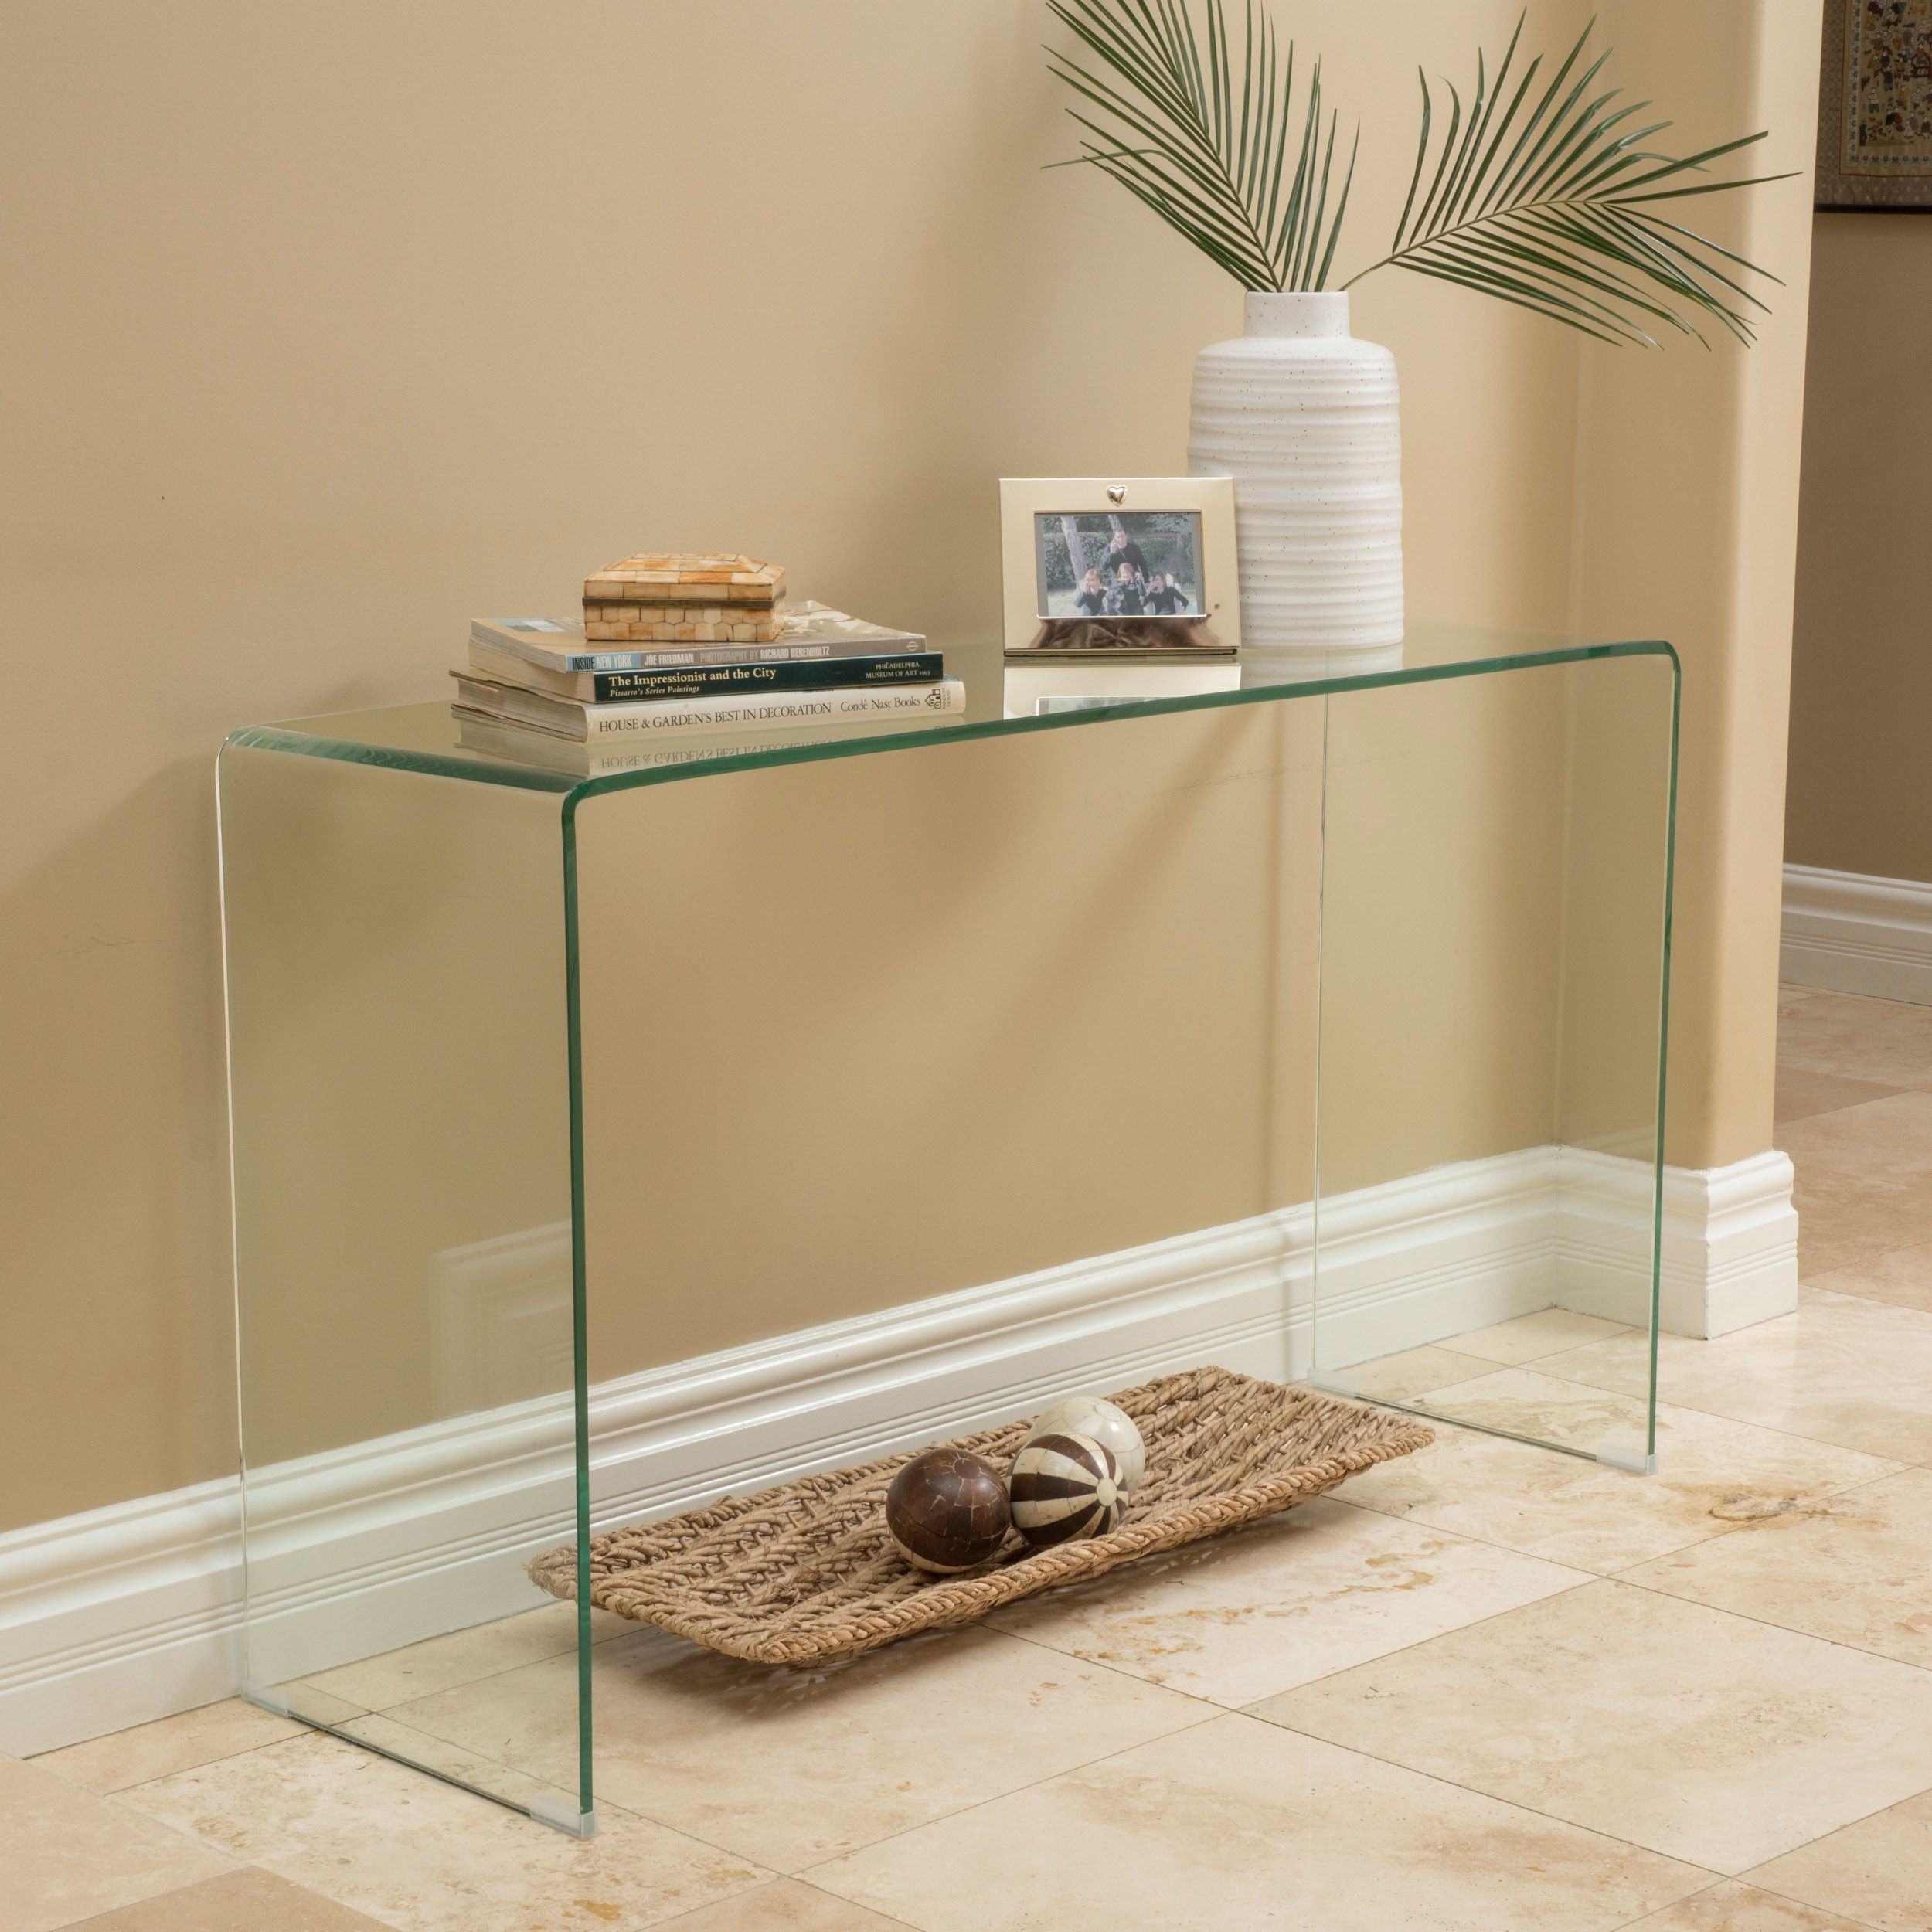 Features Includes 1 Console table Materials Glass and